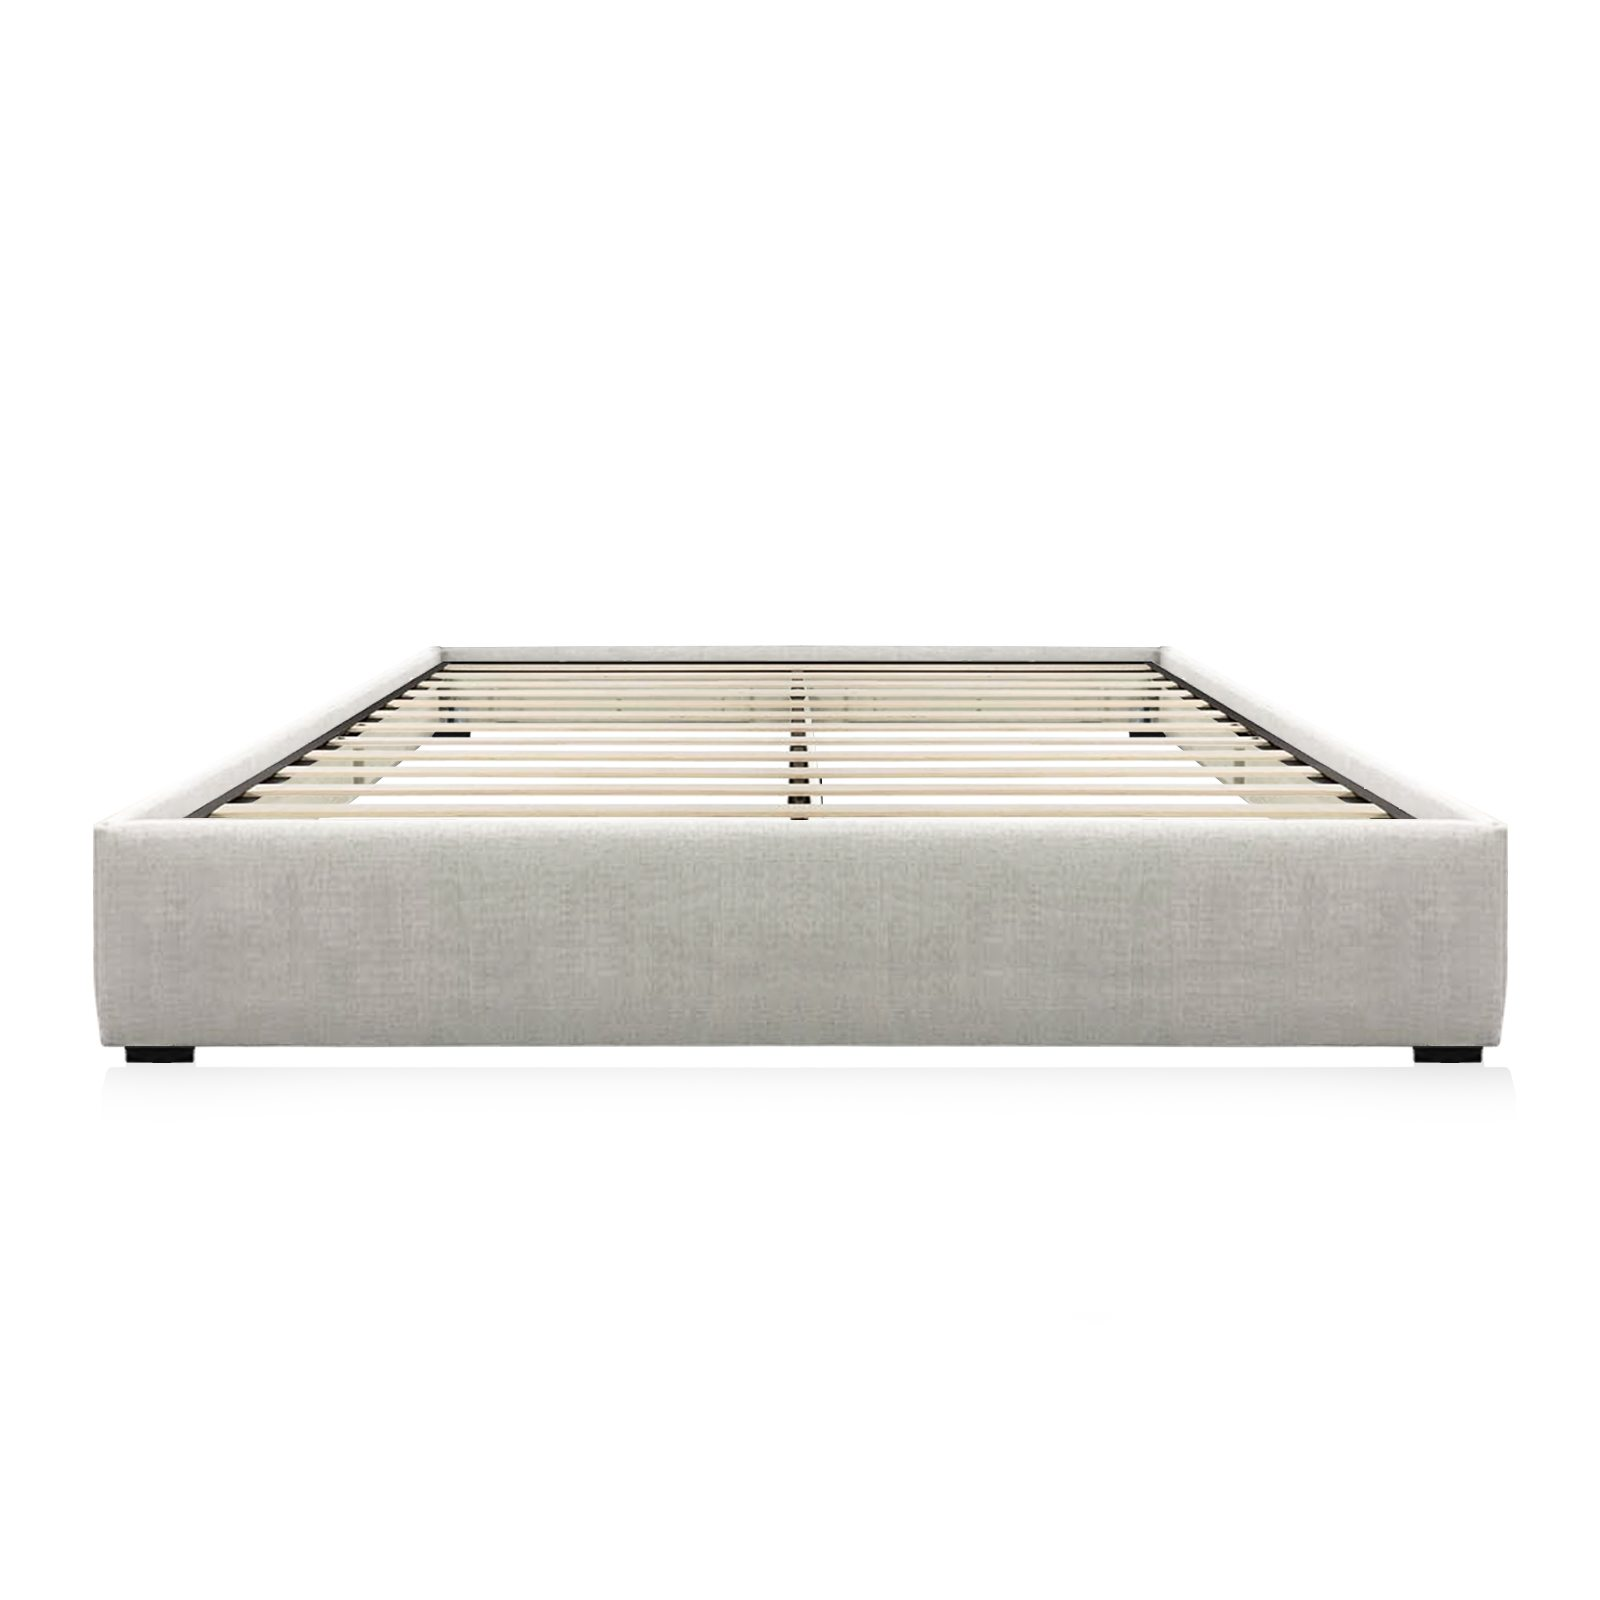 Nixon-Bed-Base-by-Bonham-&-Bonham-01